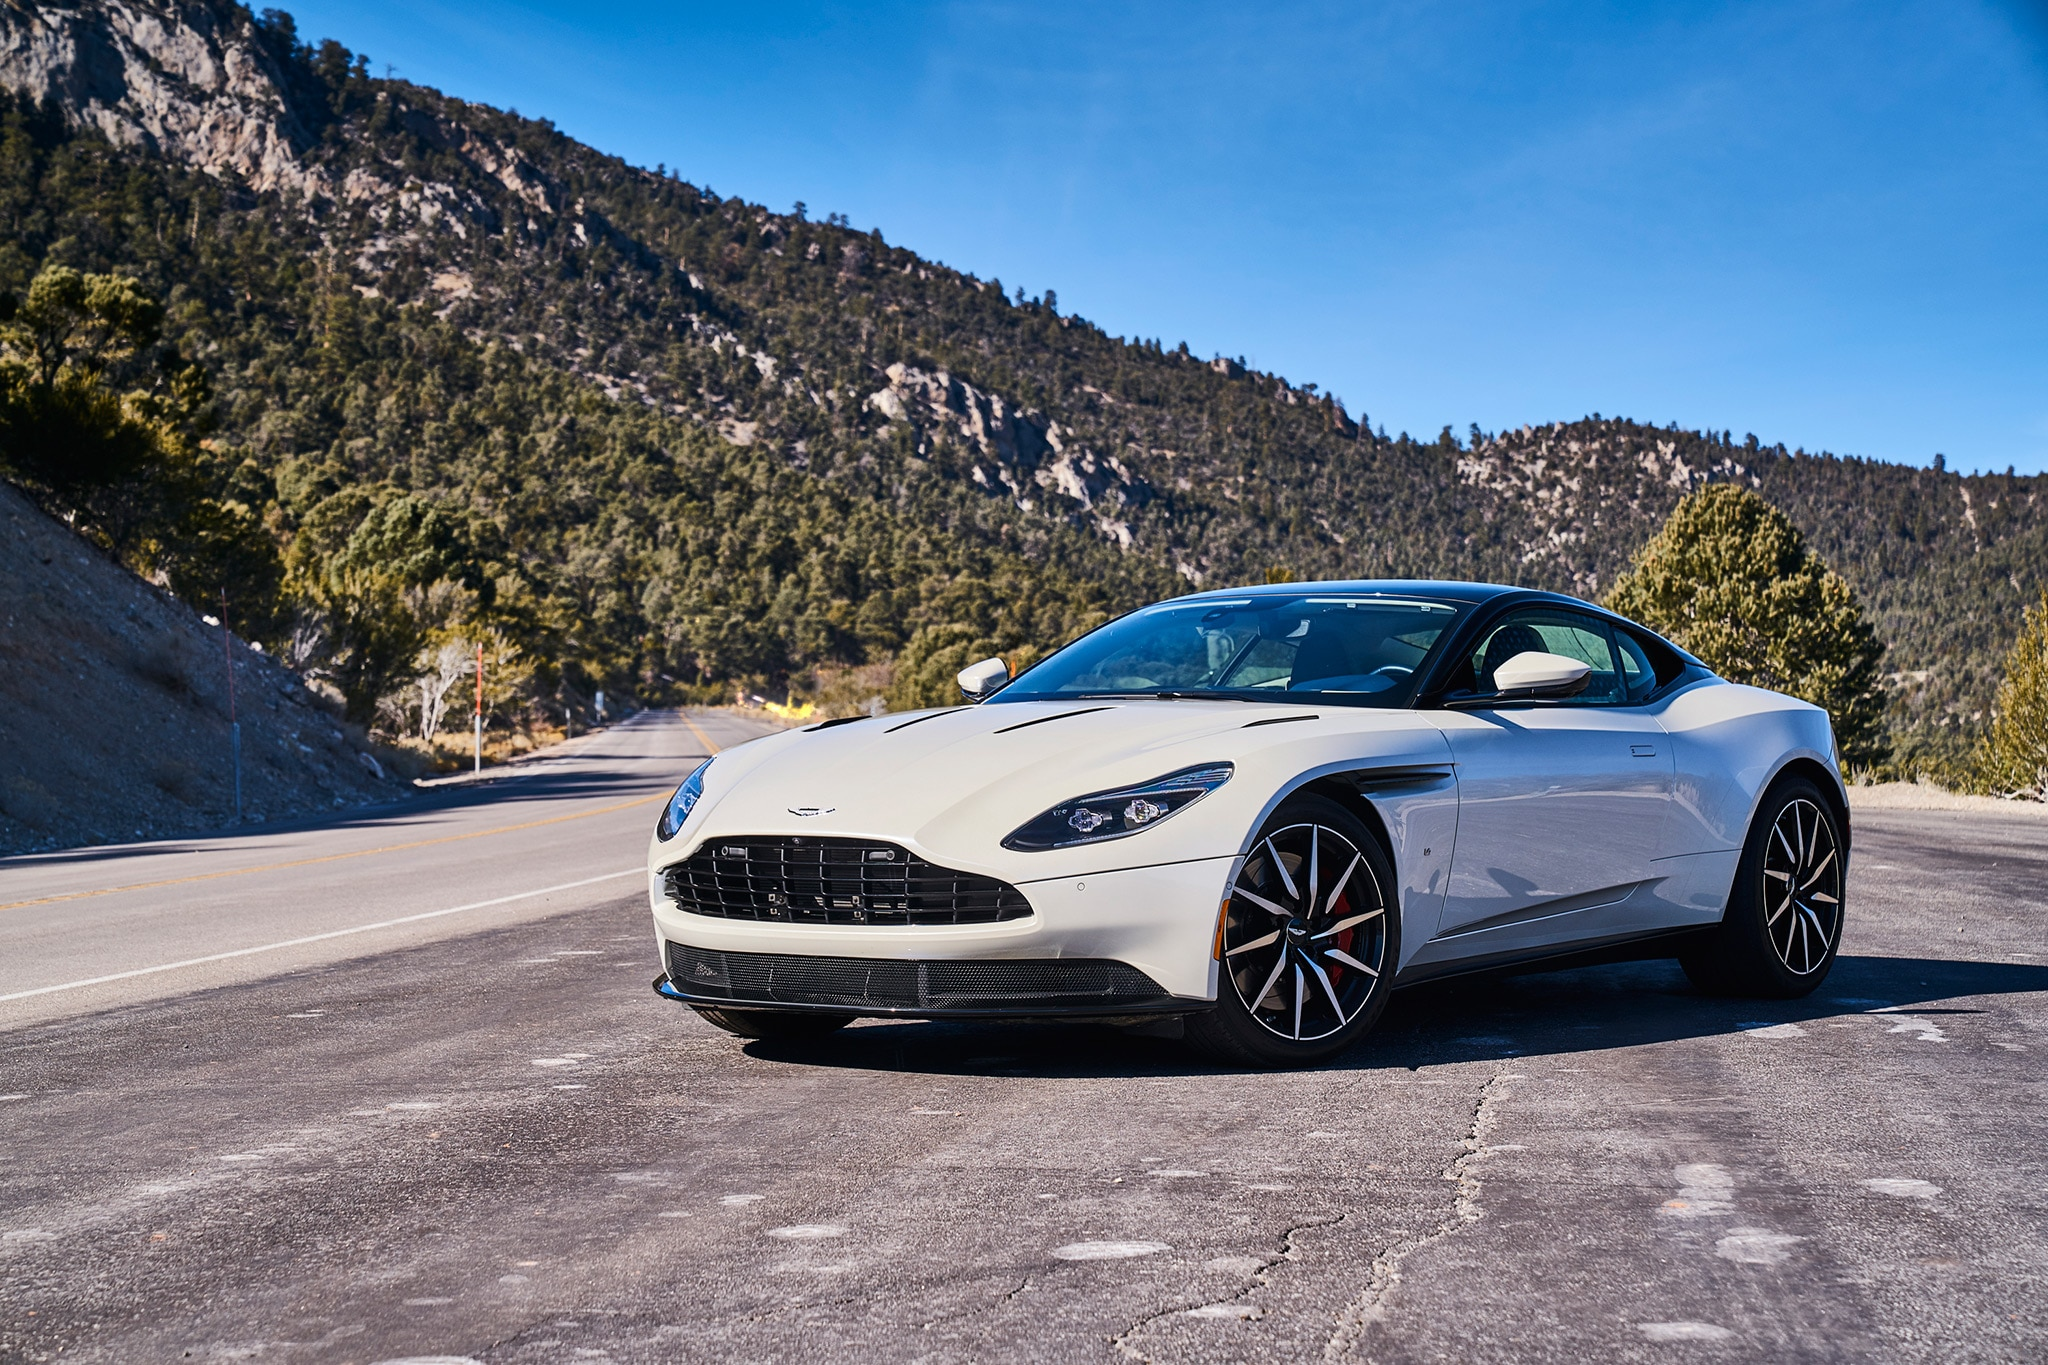 2017 Aston Martin DB11 Pricing &- Features | Edmunds